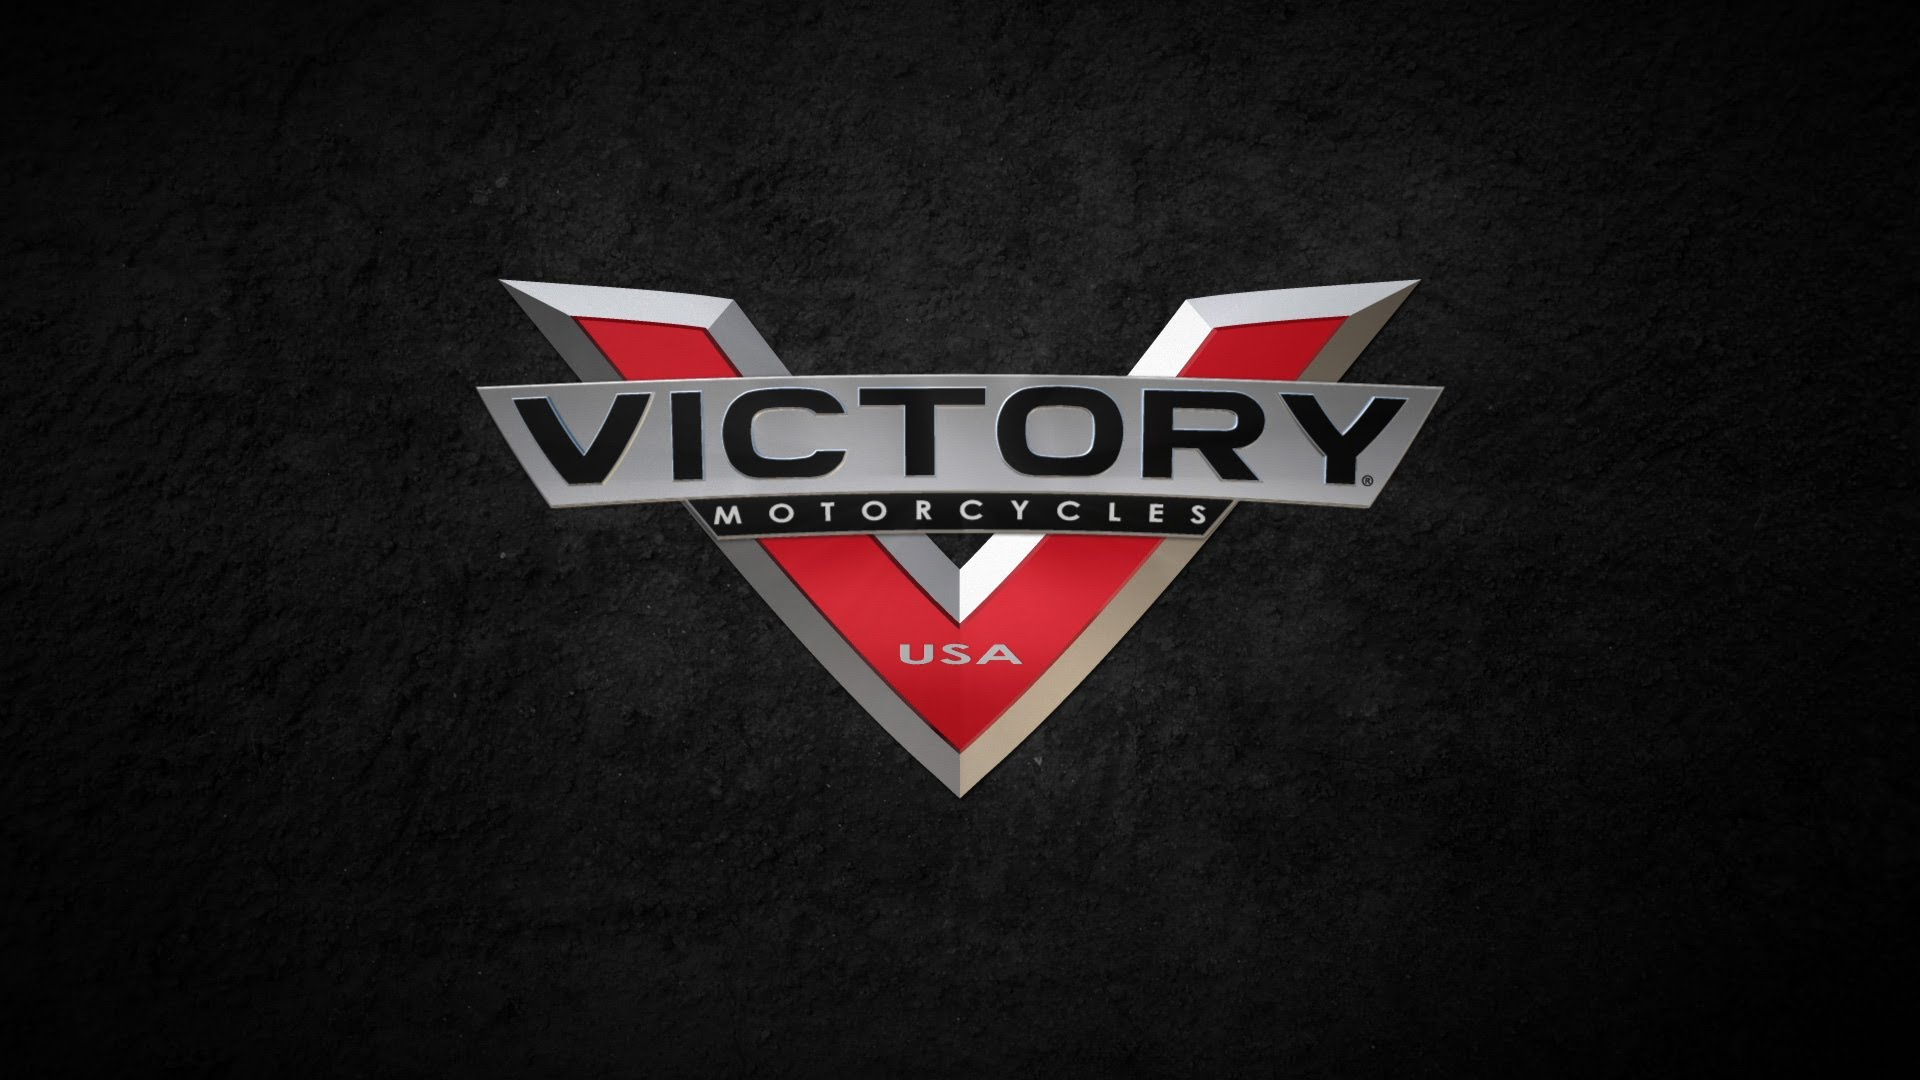 Wallpapers Of The Day: Victory | 1920x1080 px Victory Pictures